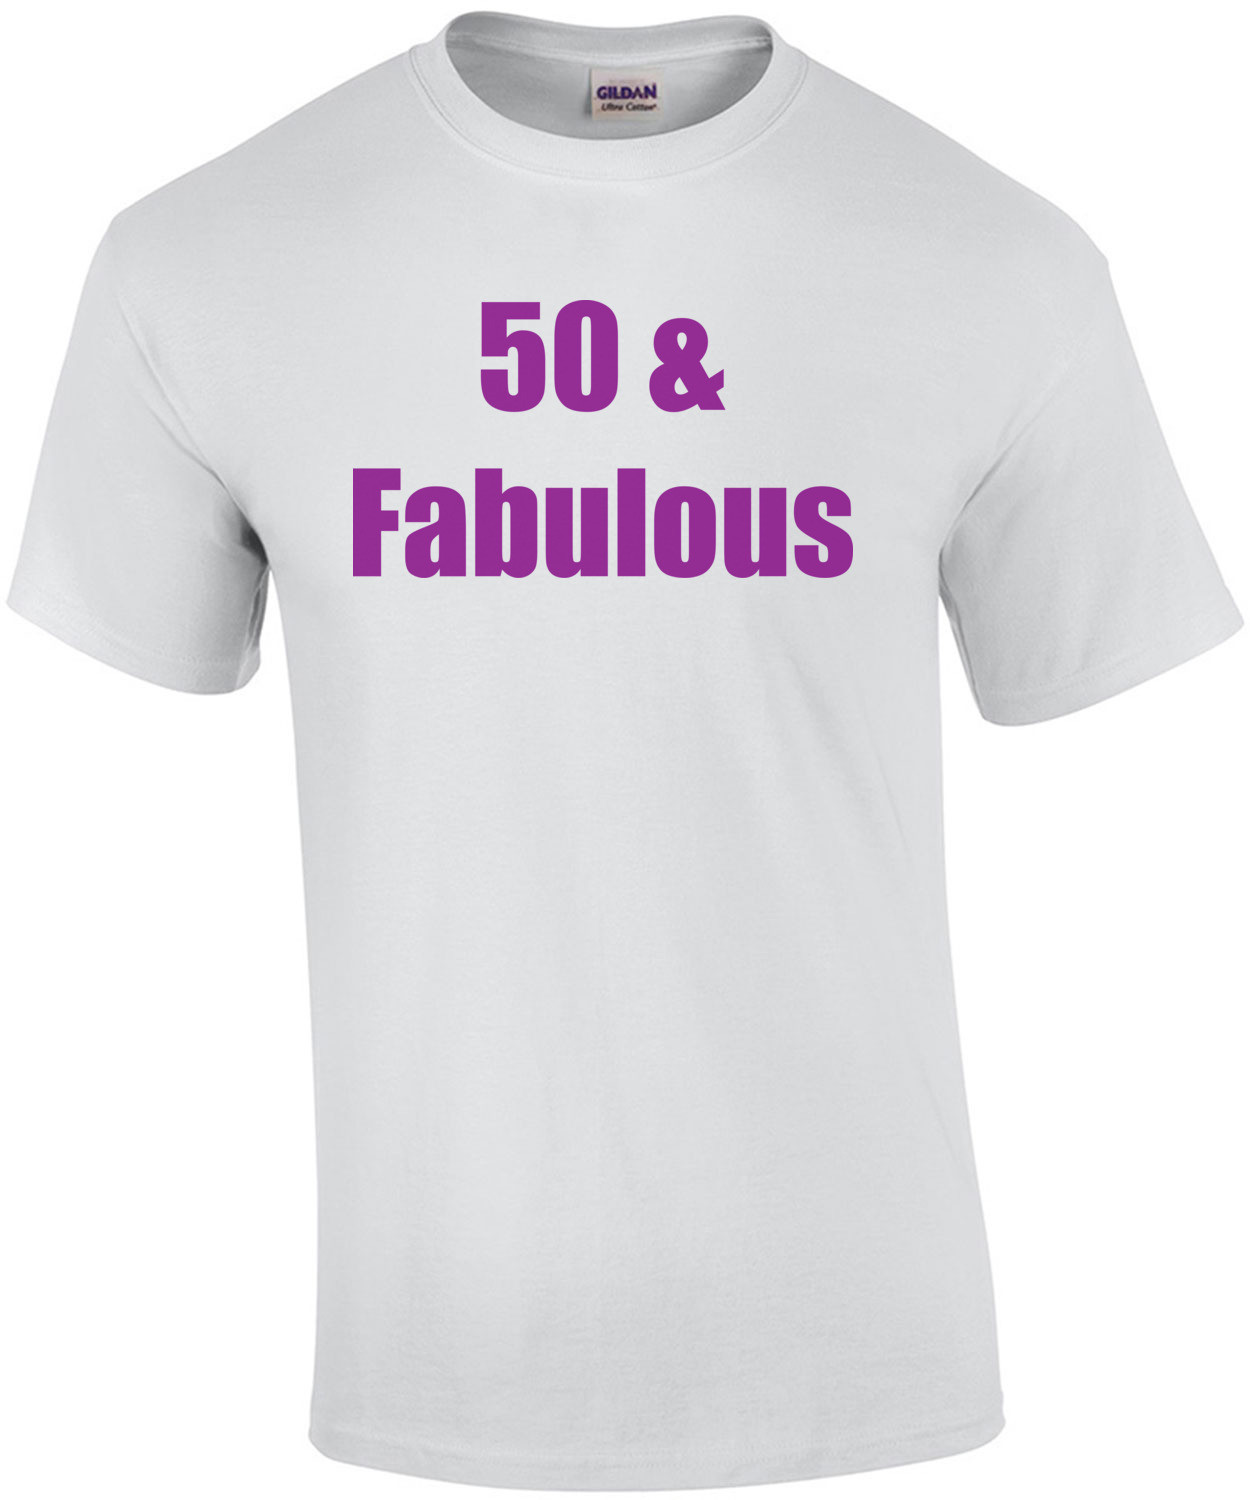 50 & Fabulous - Happy Bithday Shirt